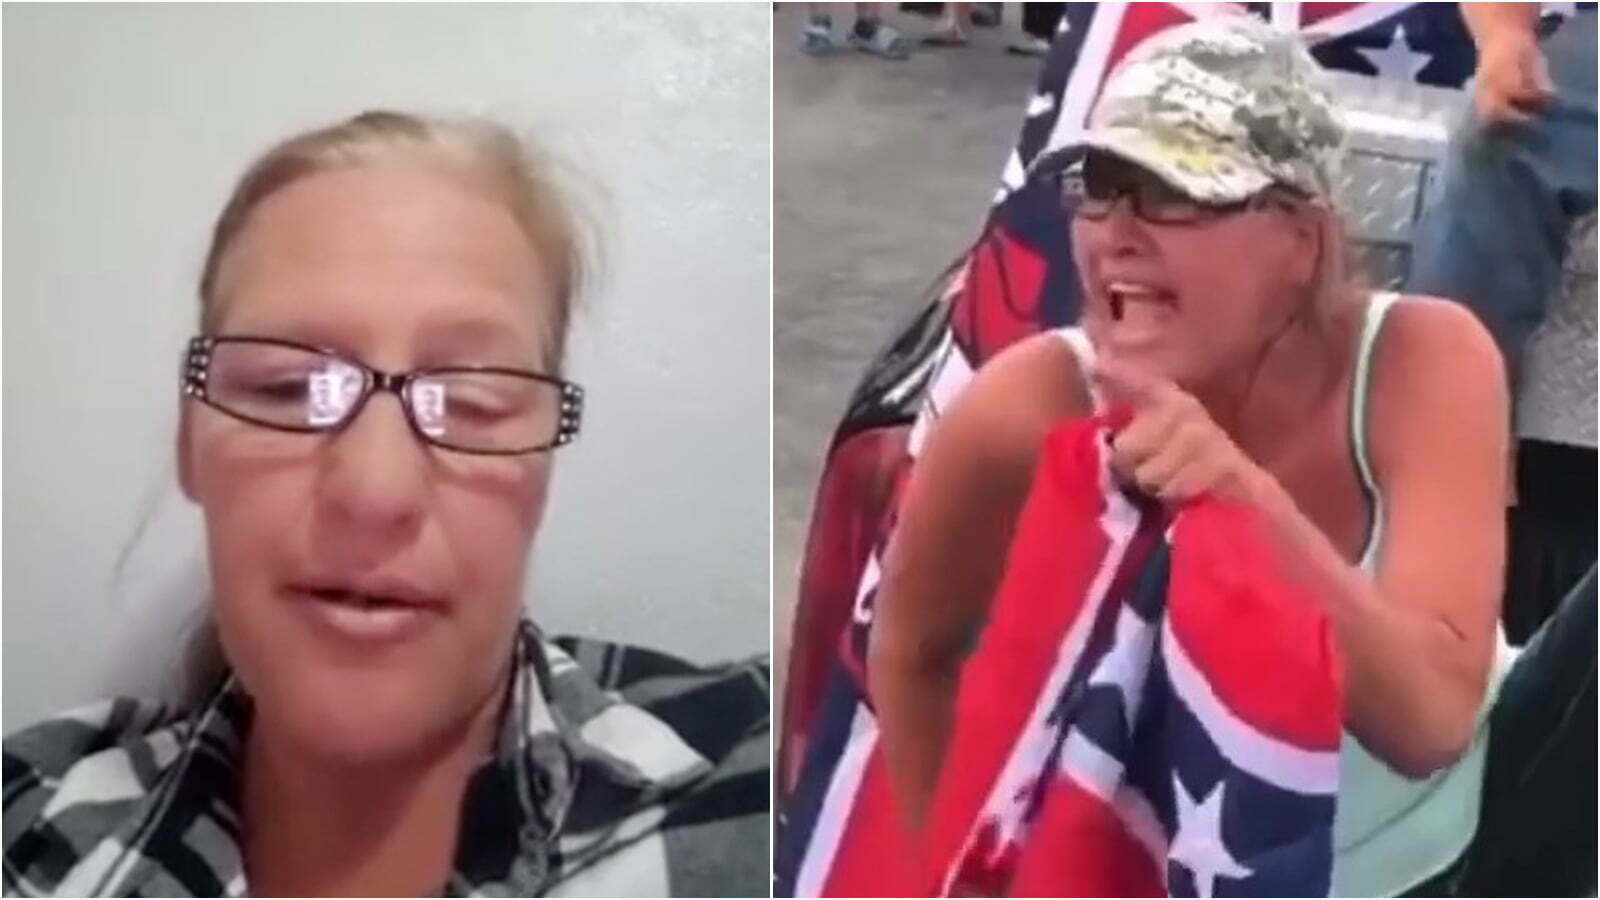 Missouri Woman Who Shouted 'KKK belief' at BLM Protest Apologizes: 'I don't represent hate' 12